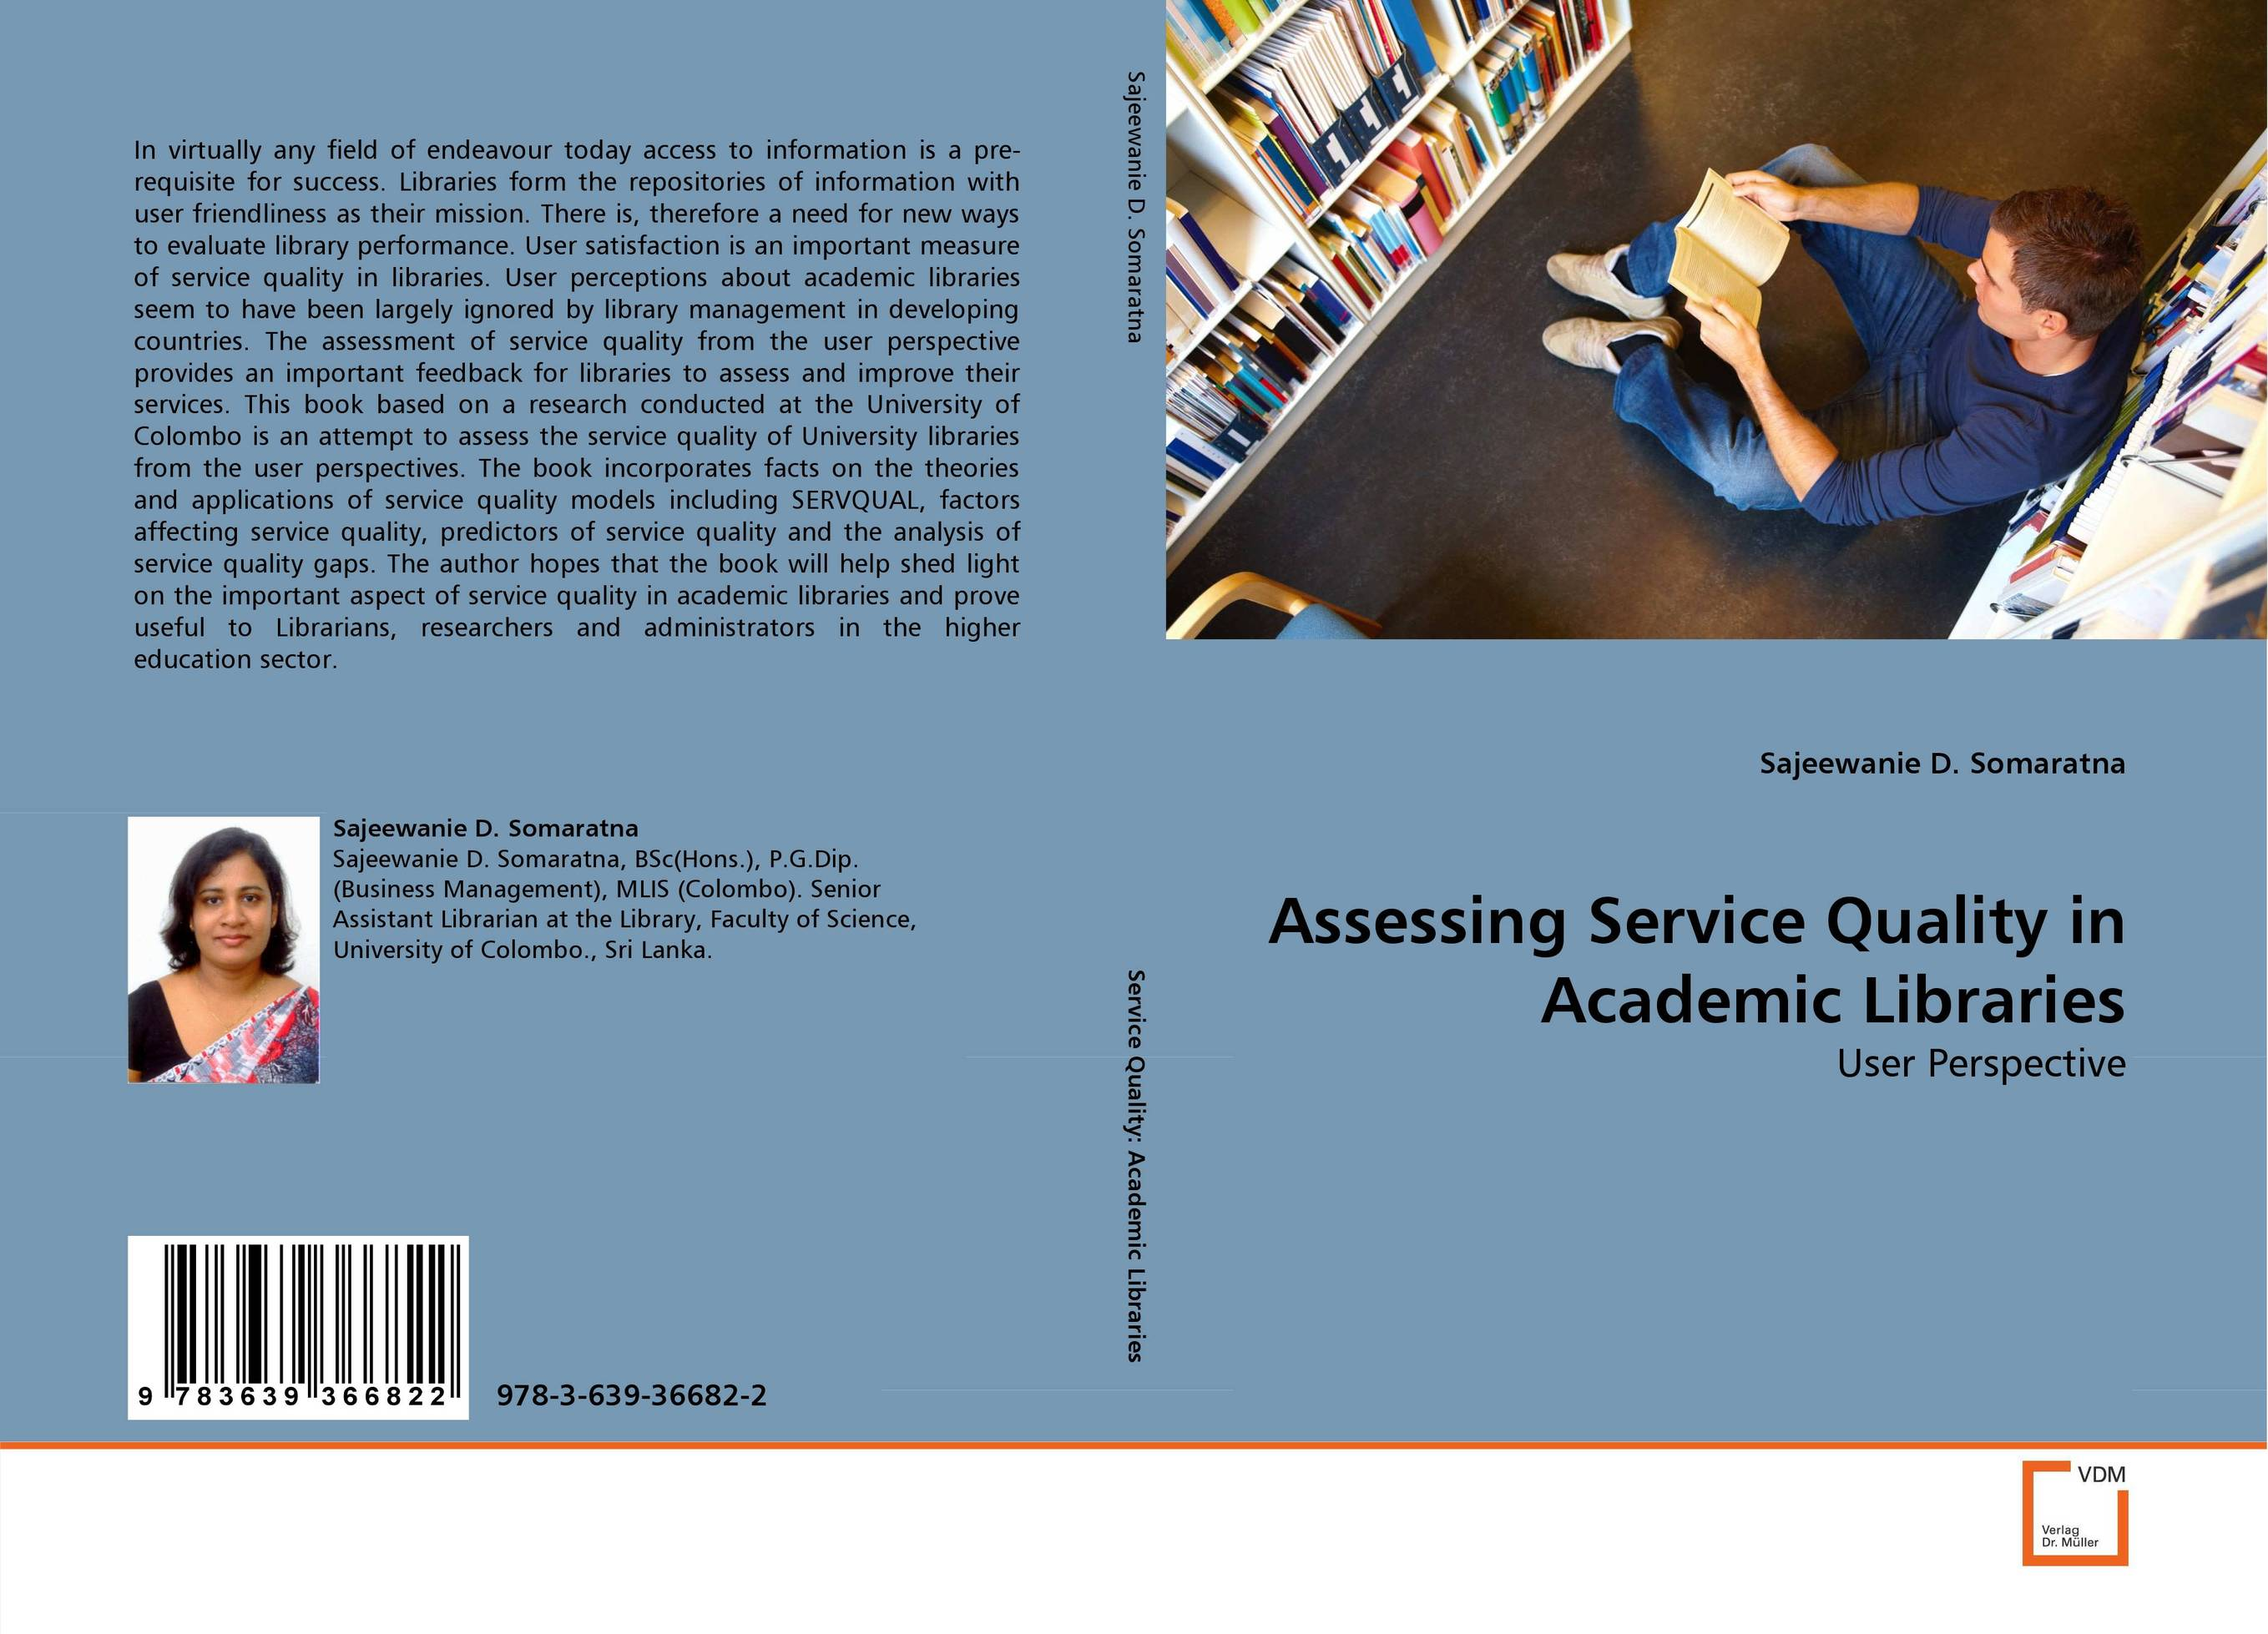 Assessing Service Quality in Academic Libraries coin a low cost user centered iptv service